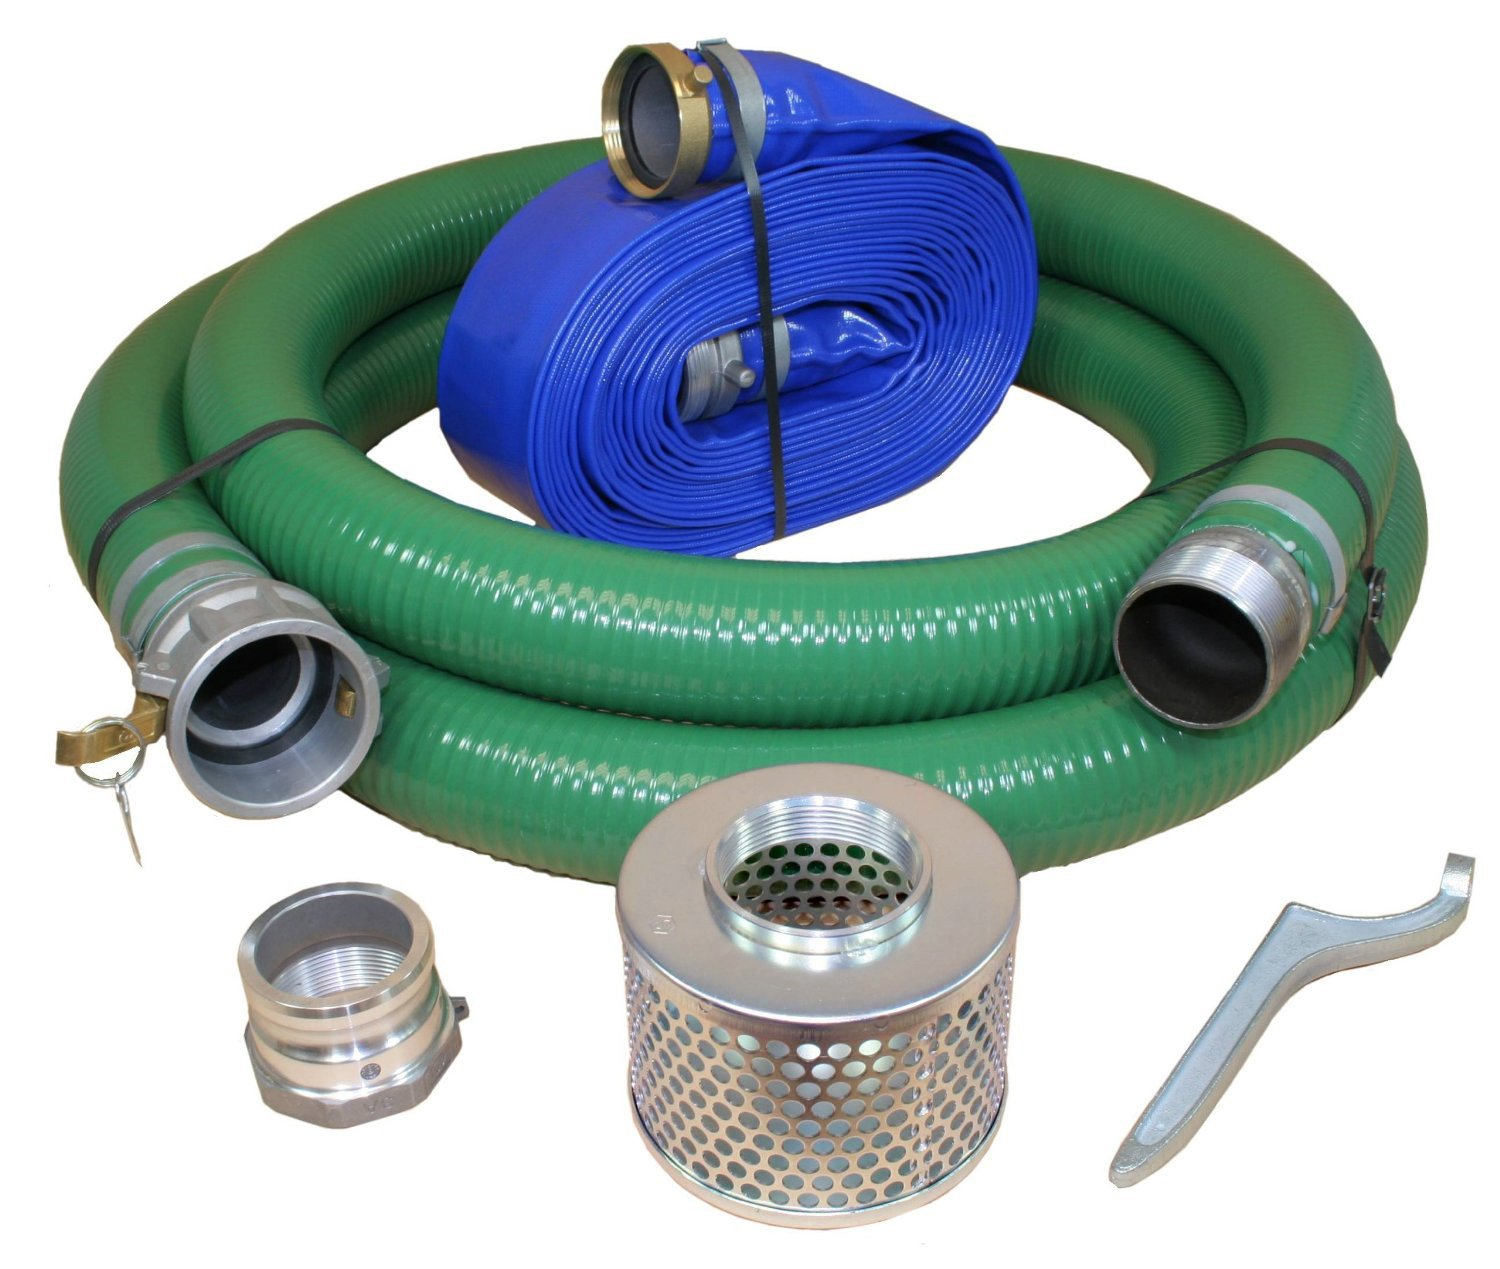 JGB Enterprises Eagle Hose PVC/Aluminum Water/Trash Pump Hose Kit, 3'' Green Suction Hose Coupled C x KCN, 3'' Blue Discharge Hose Coupled M x F WS, 29 Vacuum Rating, 70 PSI Maximum Temperature, 50' Length, 3 ID by JGB Enterprises